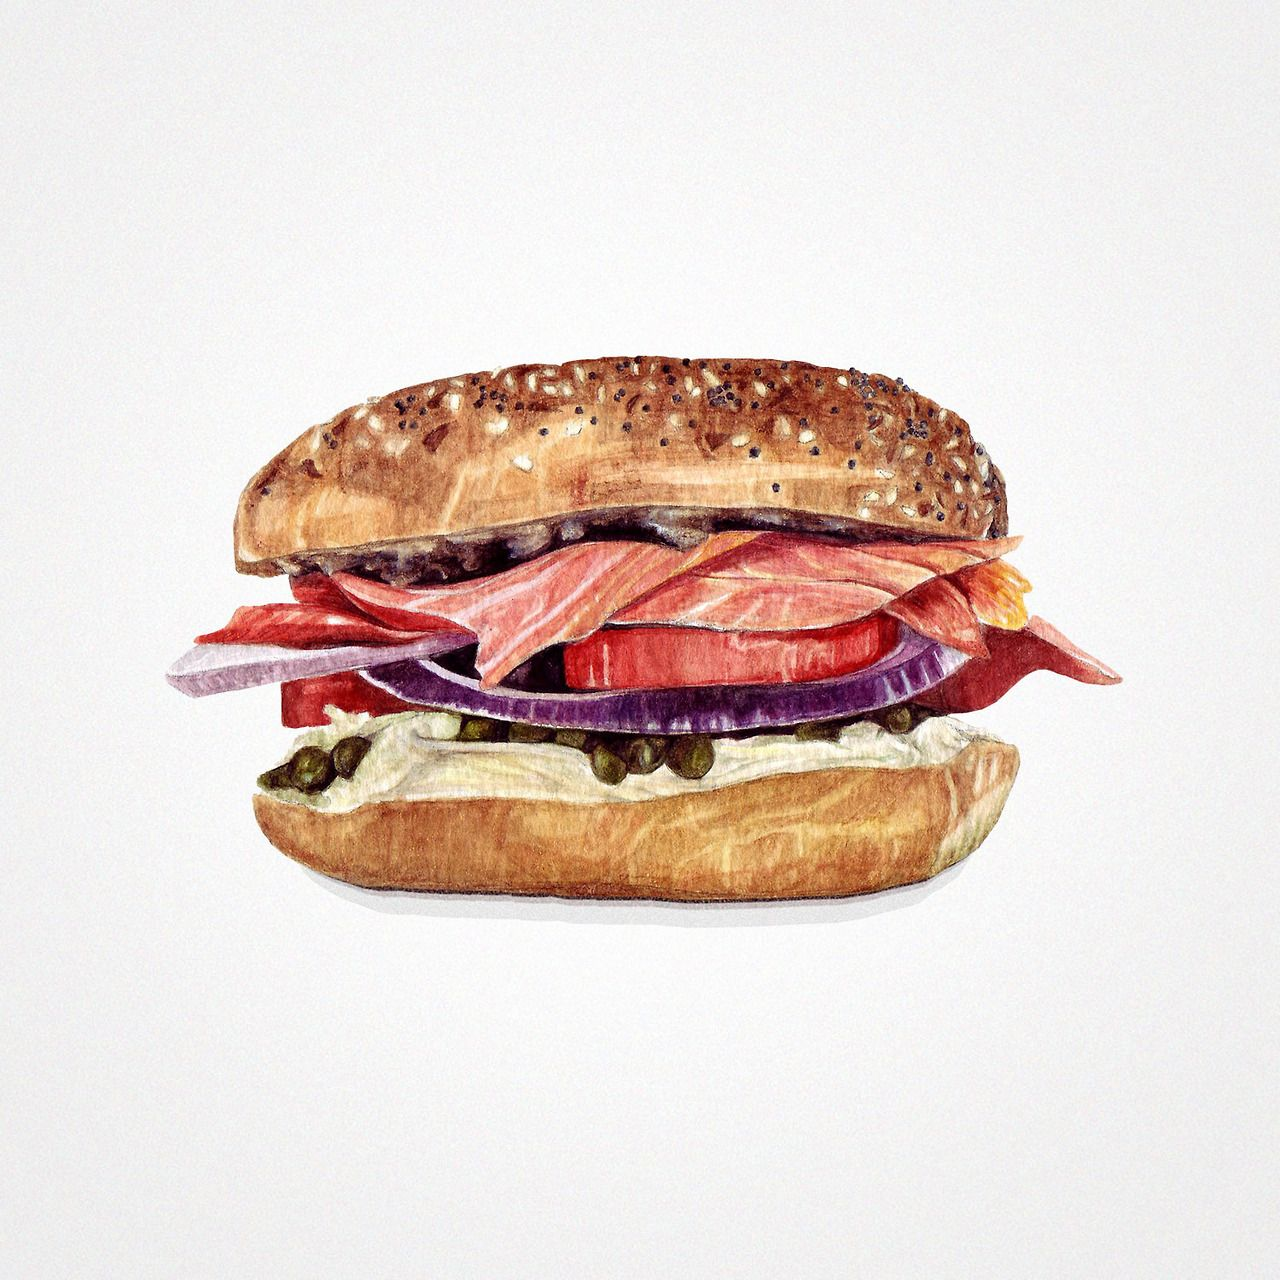 Smoked Salmon Sandwich Watercolor illustrations by Sara Zin. http://starvingartistbook.tumblr.com/